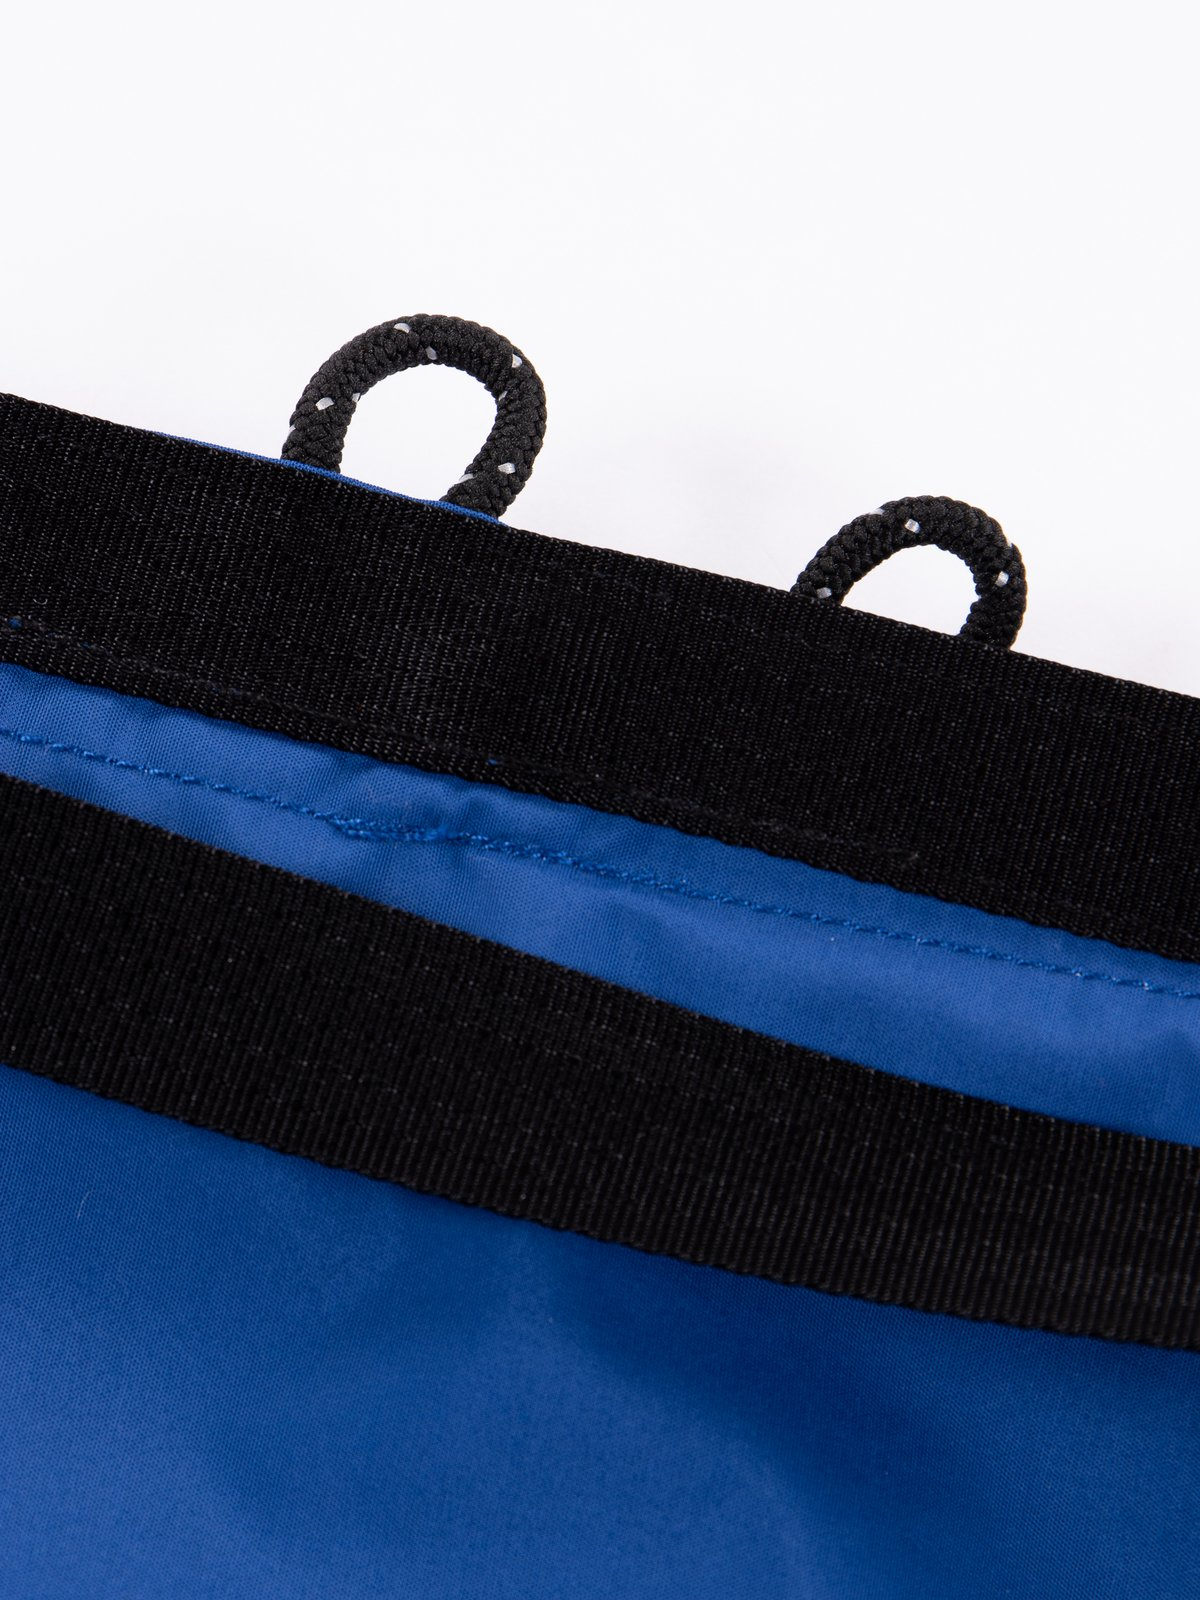 Blue Roll Nylon Shoulder Bag - Image 6